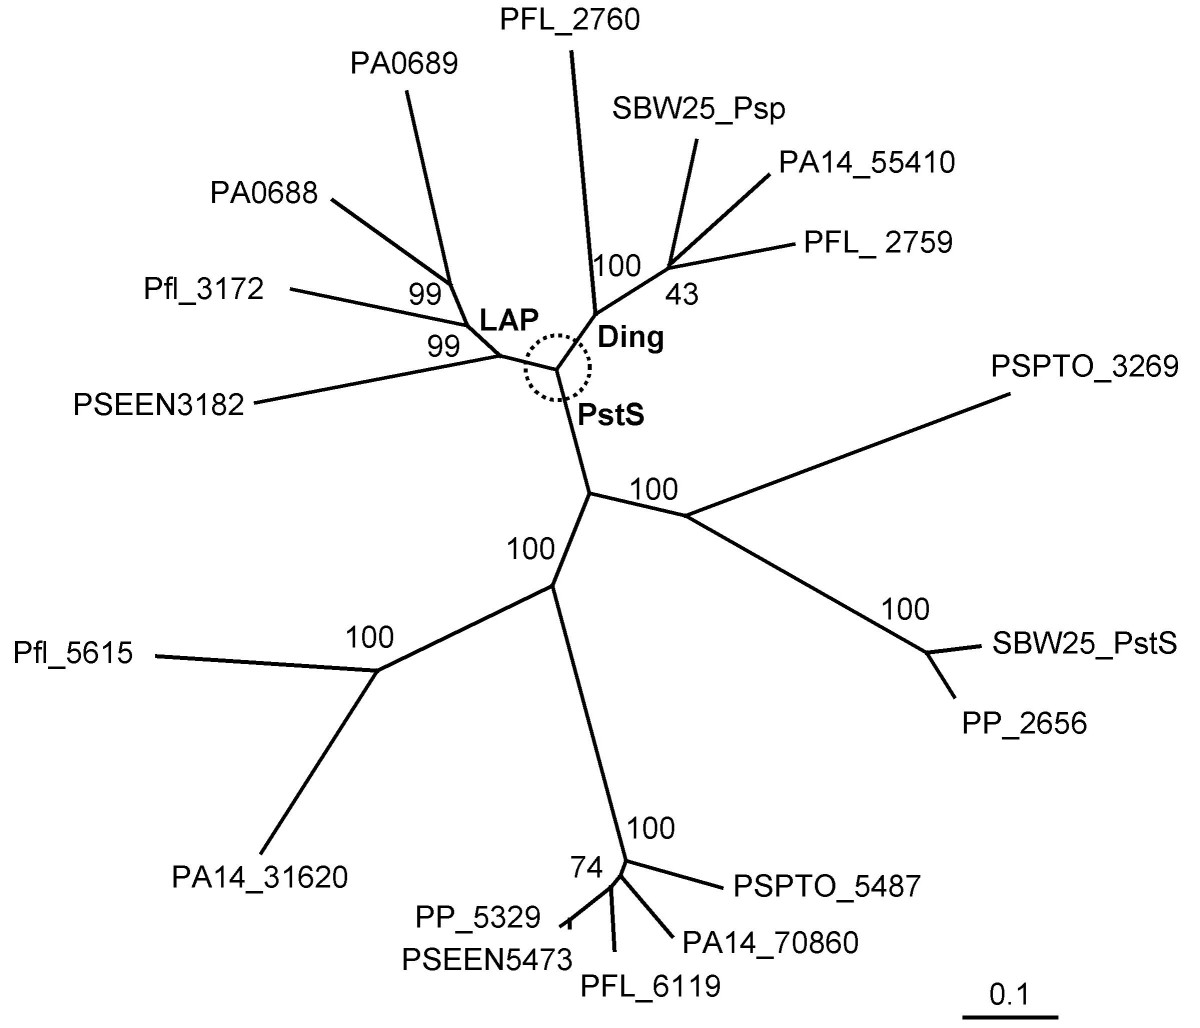 http://static-content.springer.com/image/art%3A10.1186%2F1471-2180-7-114/MediaObjects/12866_2007_Article_431_Fig2_HTML.jpg